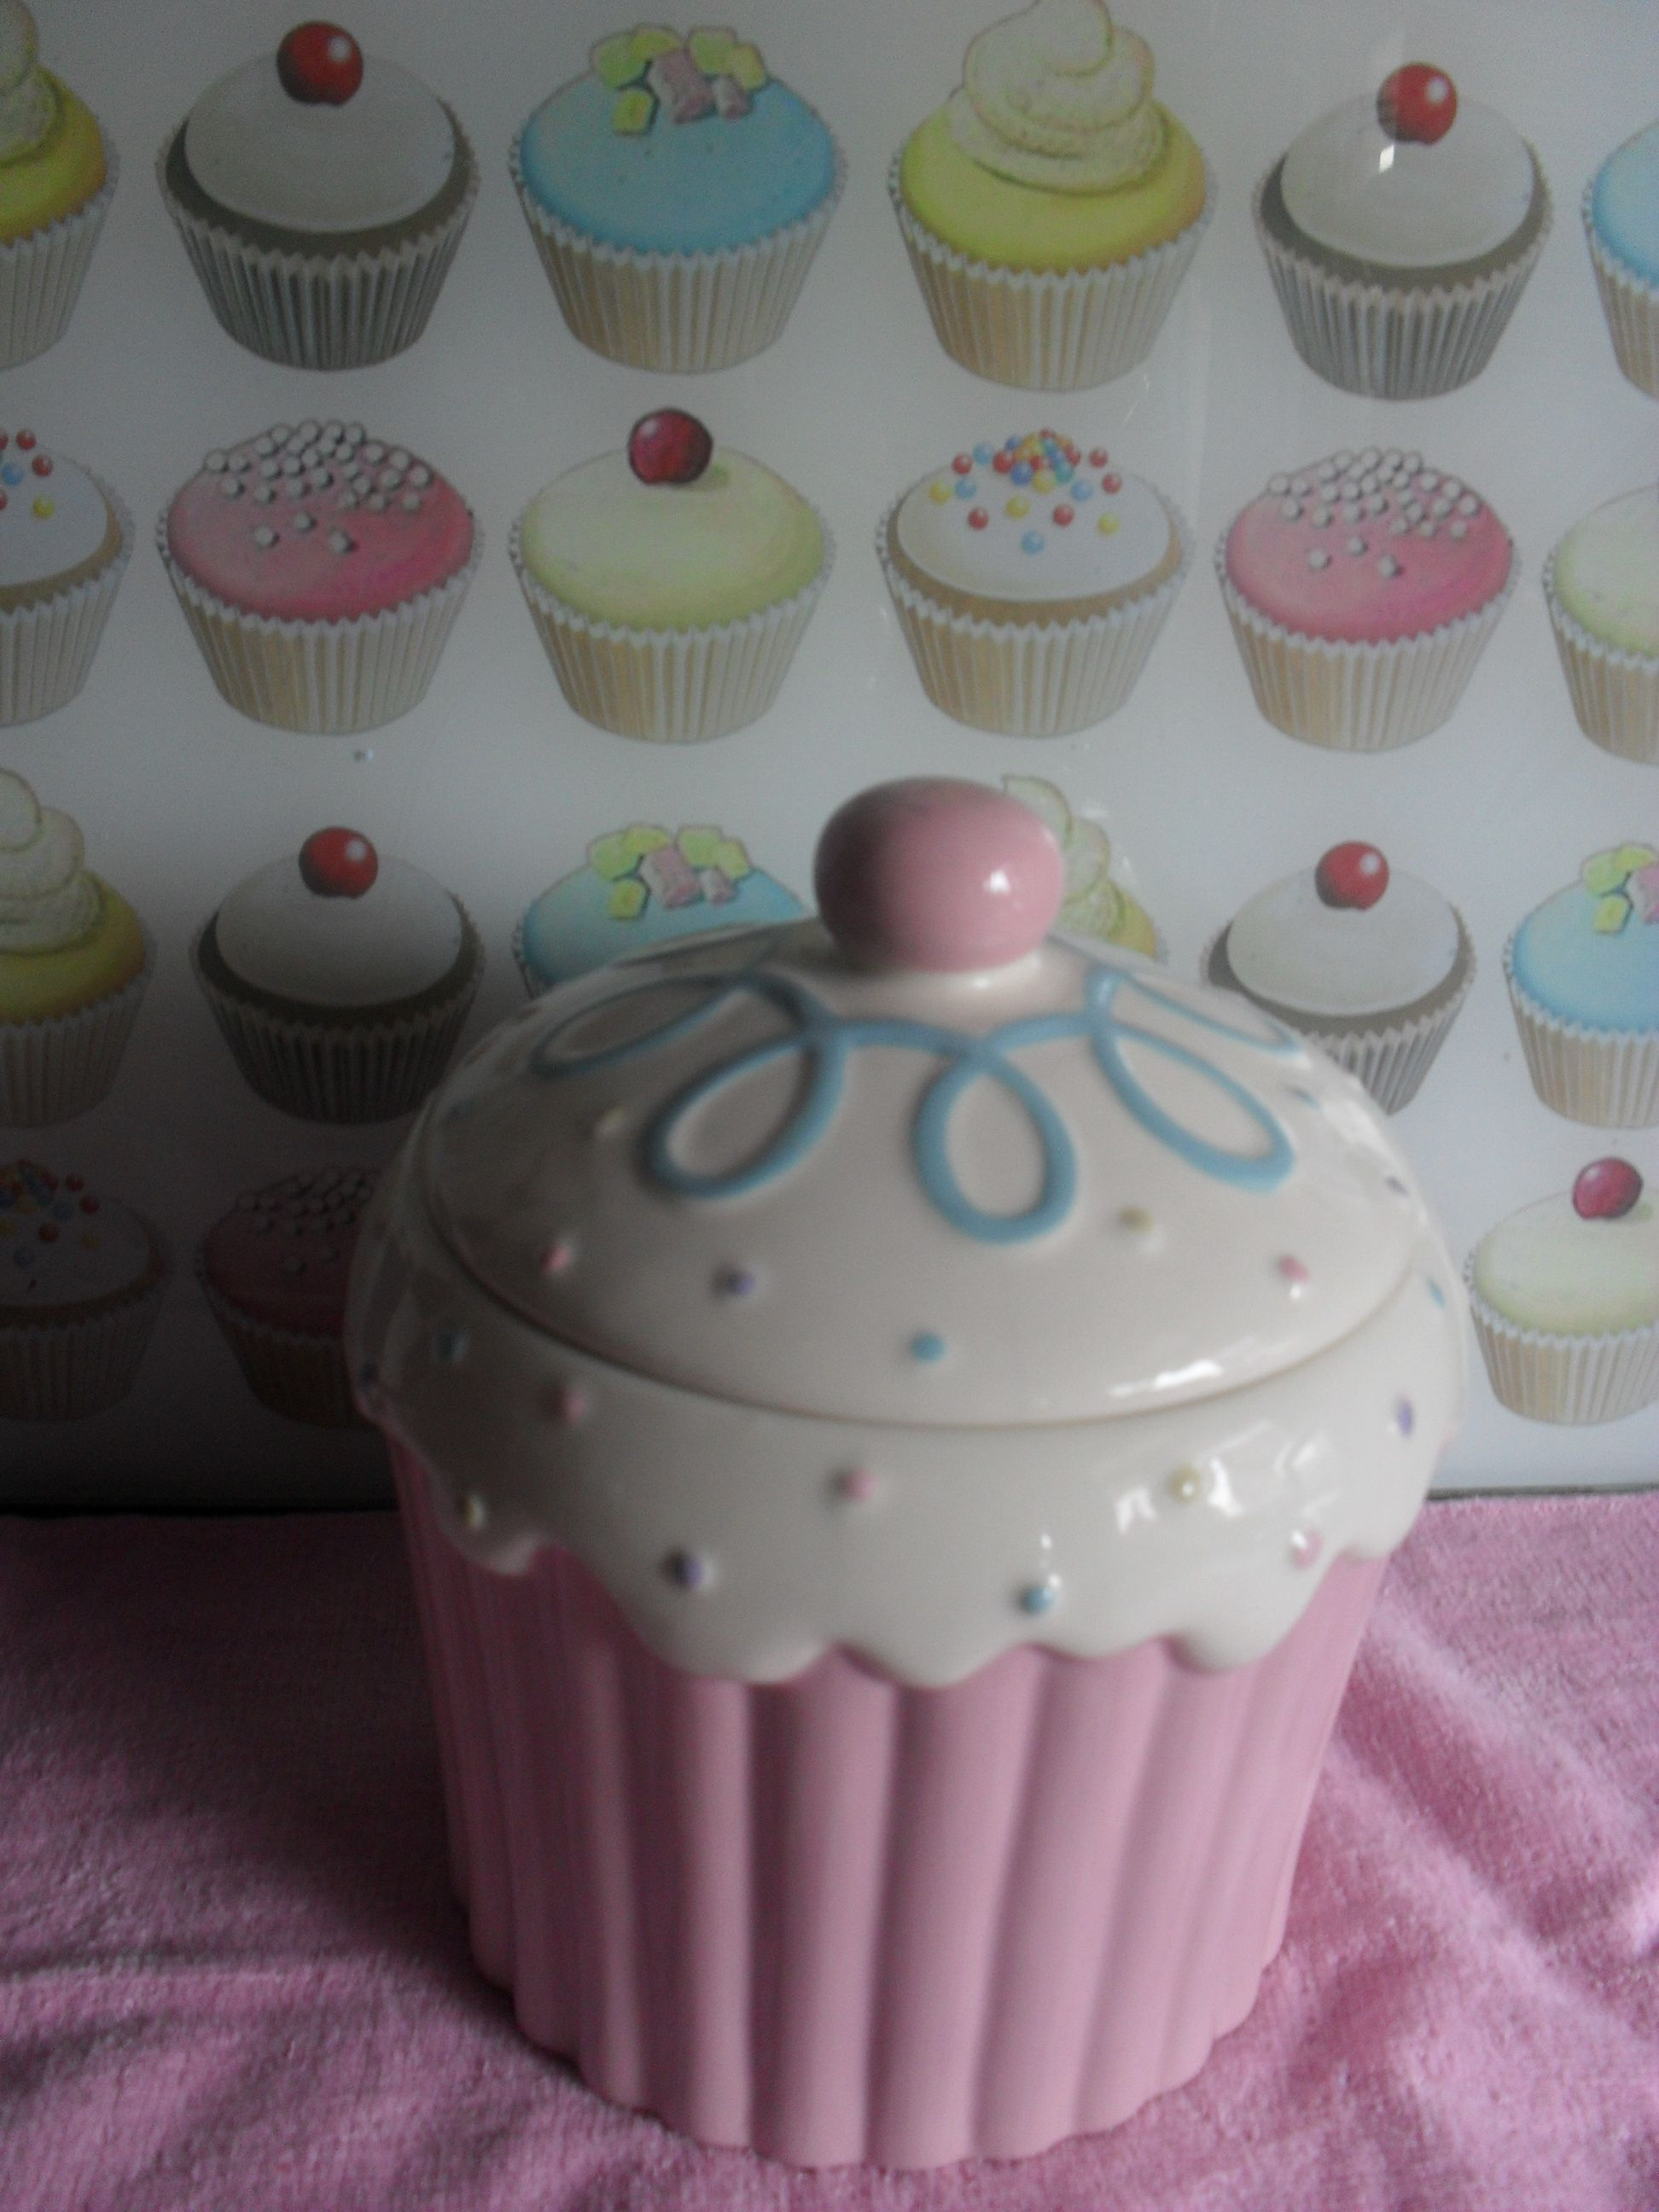 cupcake kitchen timer this is so cute i want the pink one